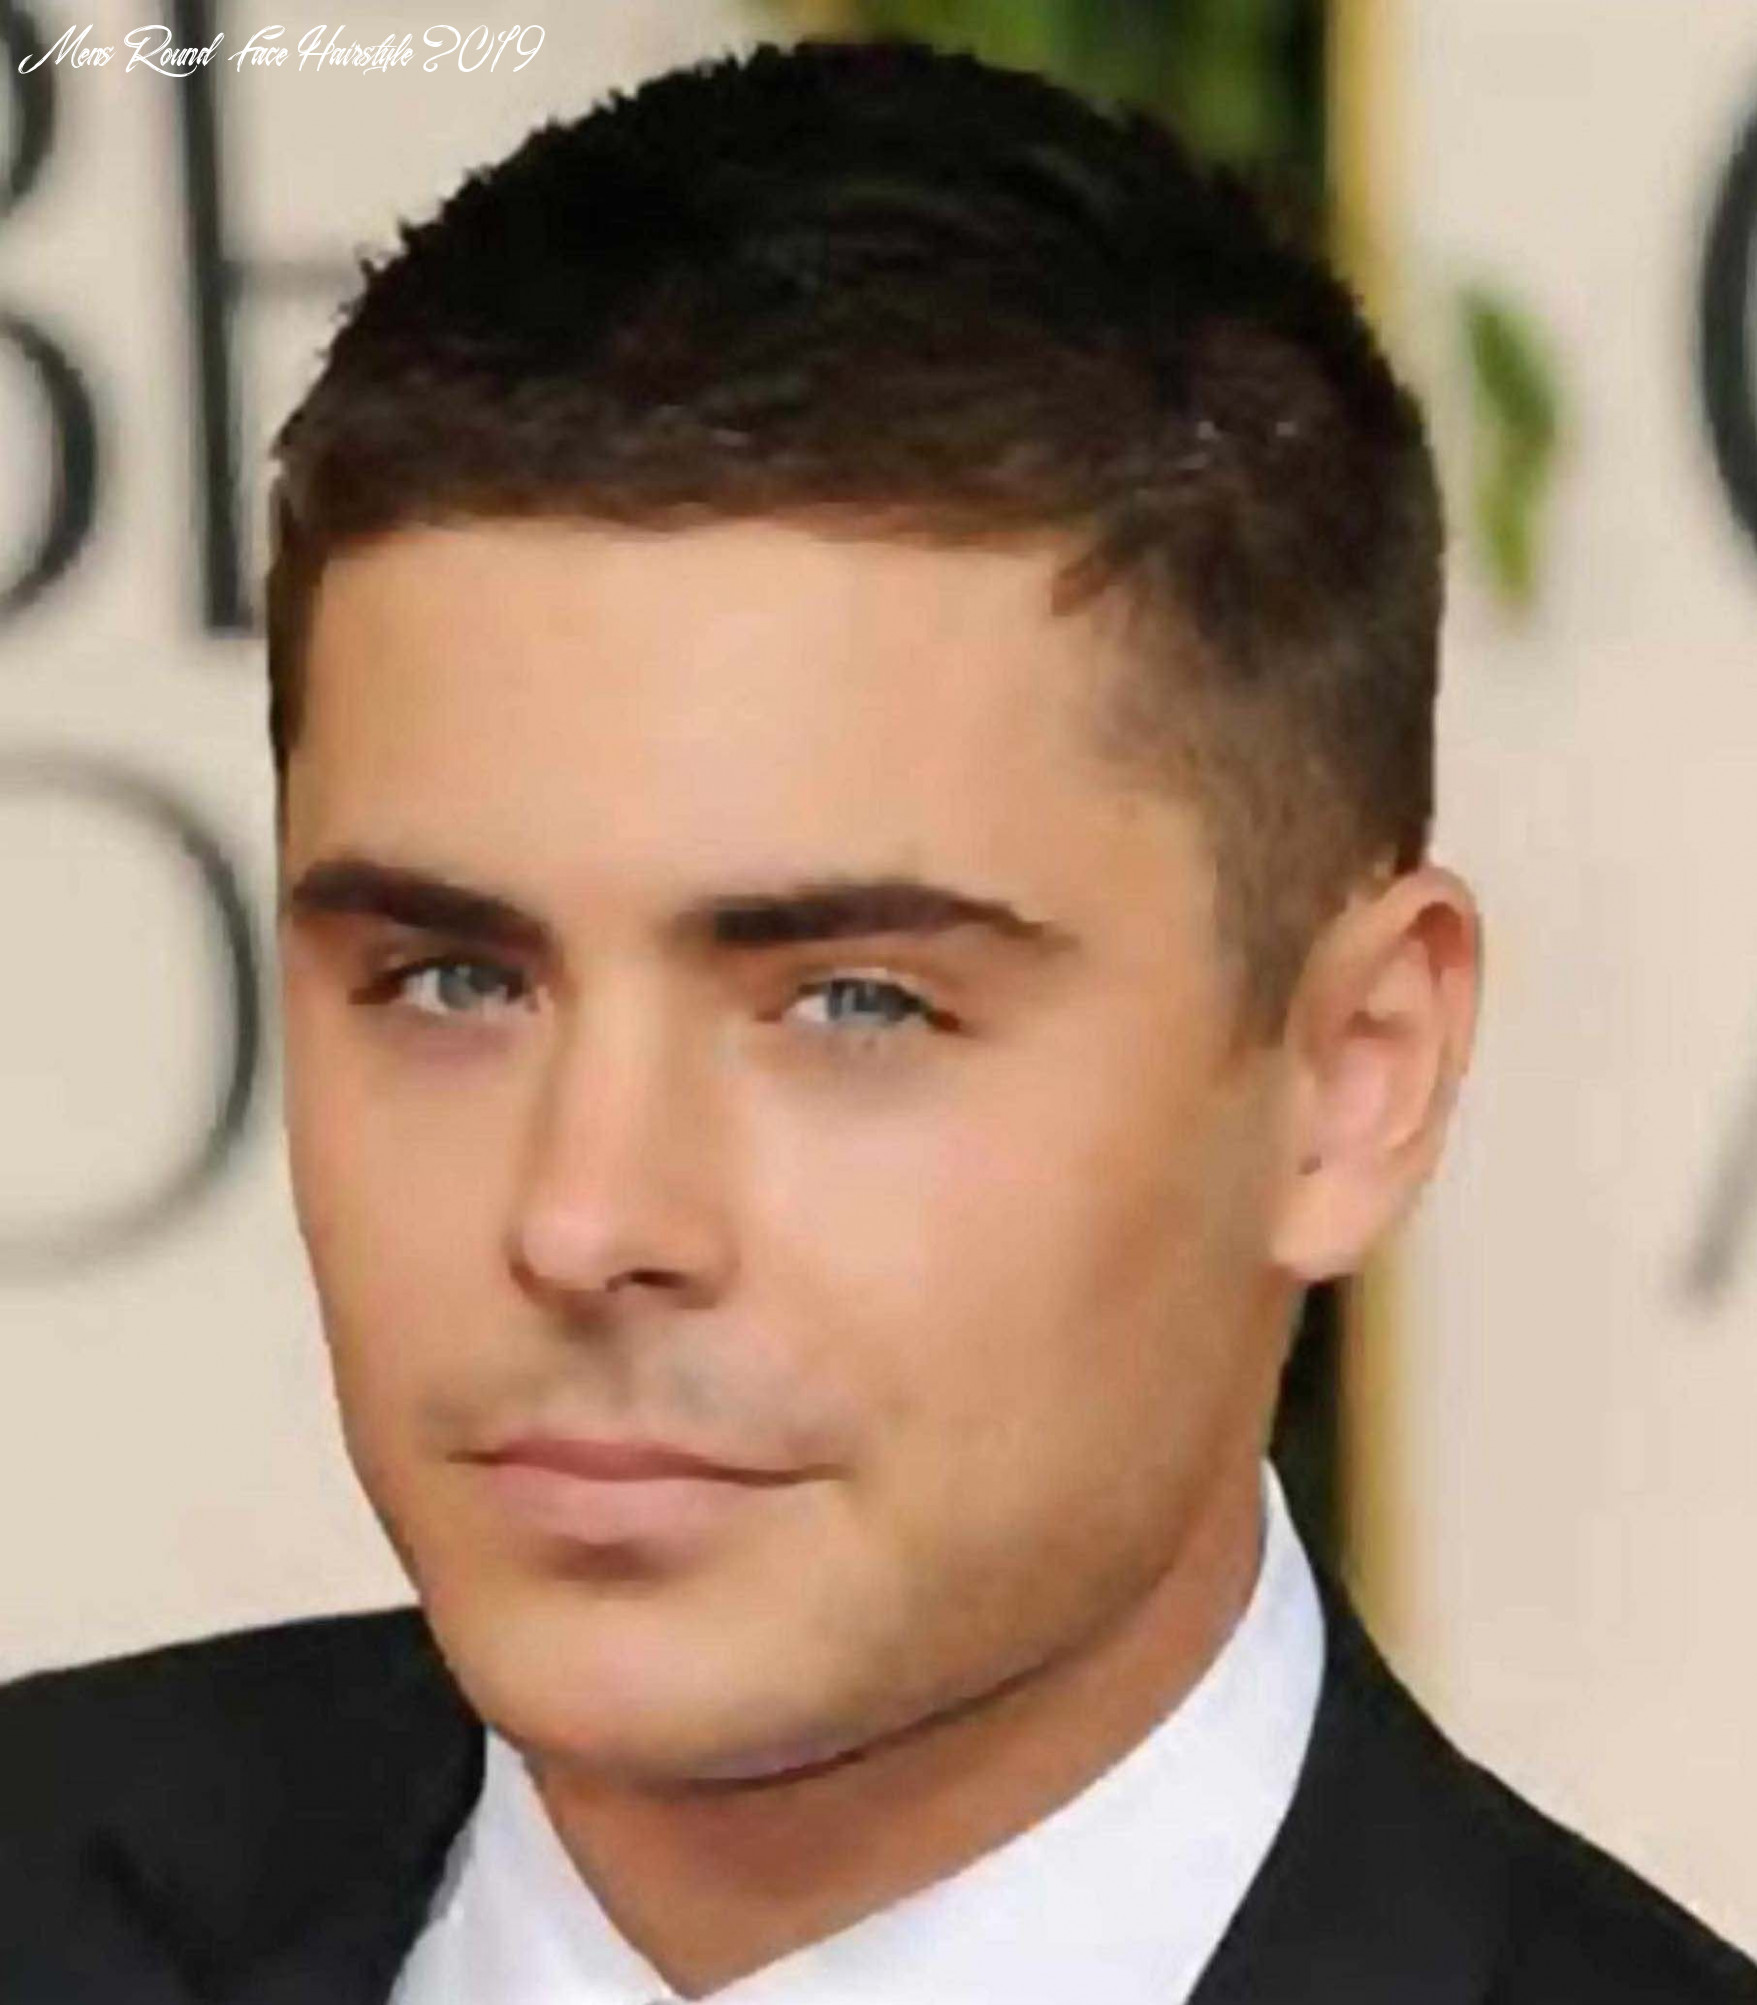 Style : mens hairstyles for thick hair and round face